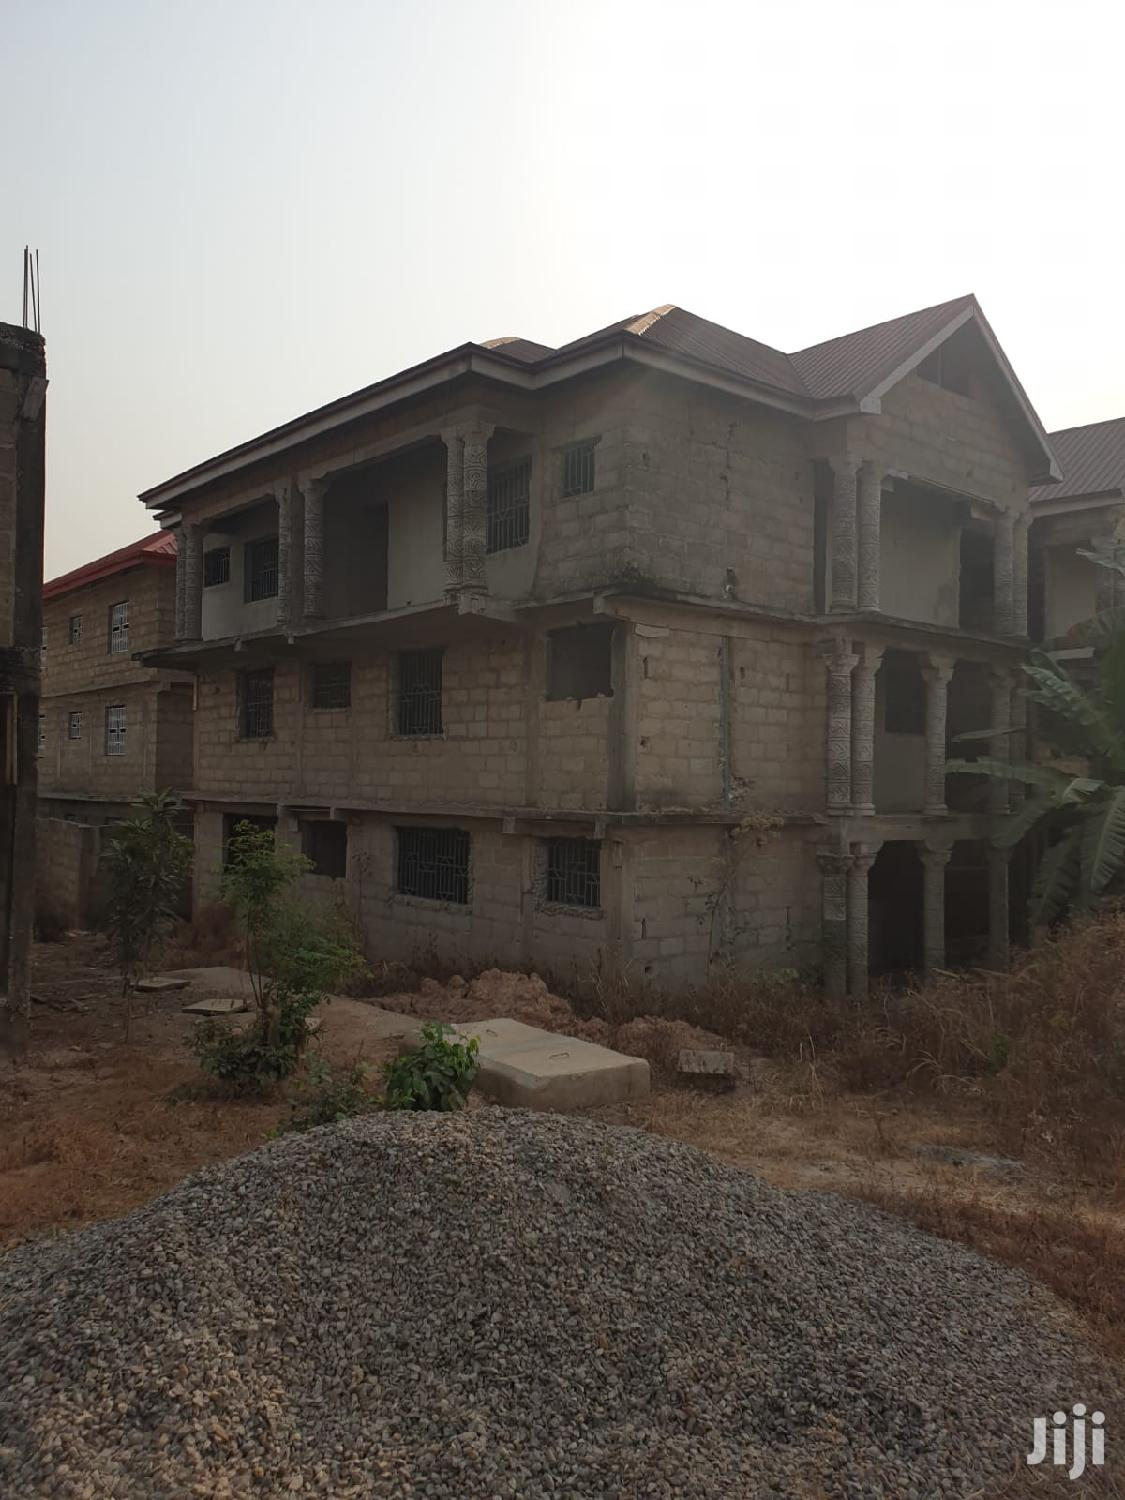 6 Flats of 3 Bedroom Each Storey Building for Sale | Houses & Apartments For Sale for sale in Kumasi Metropolitan, Ashanti, Ghana